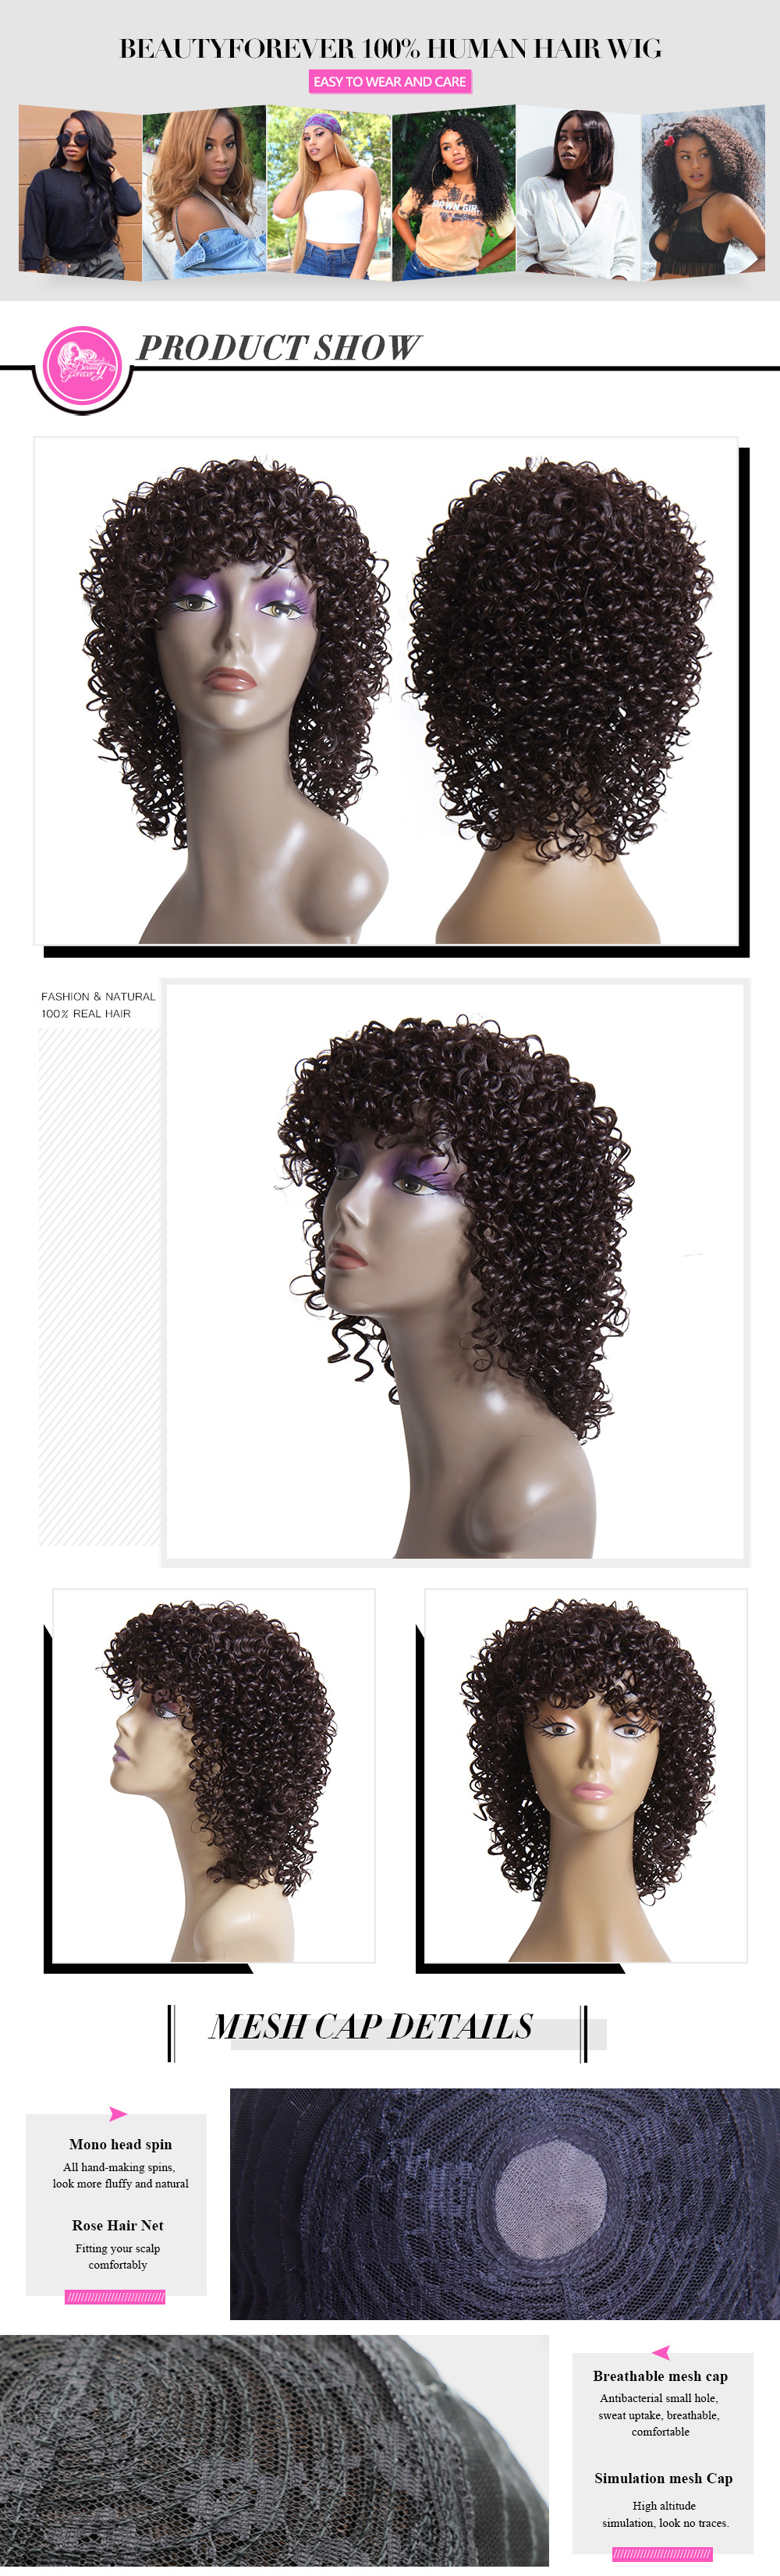 Beautyforever Real Curly Human Hair Wigs 3 Colors